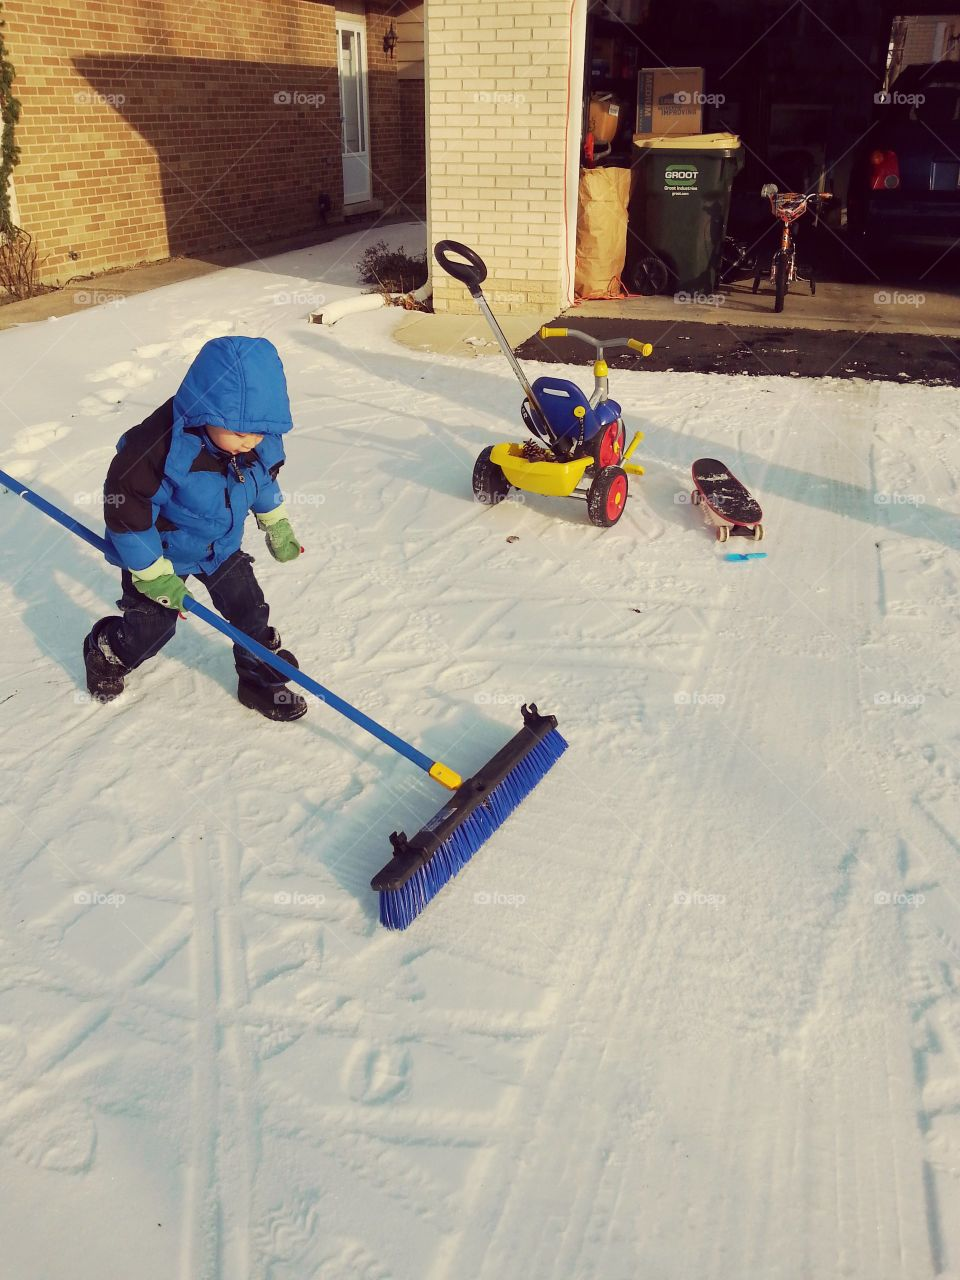 small boy sweeping snow in driveway with broom